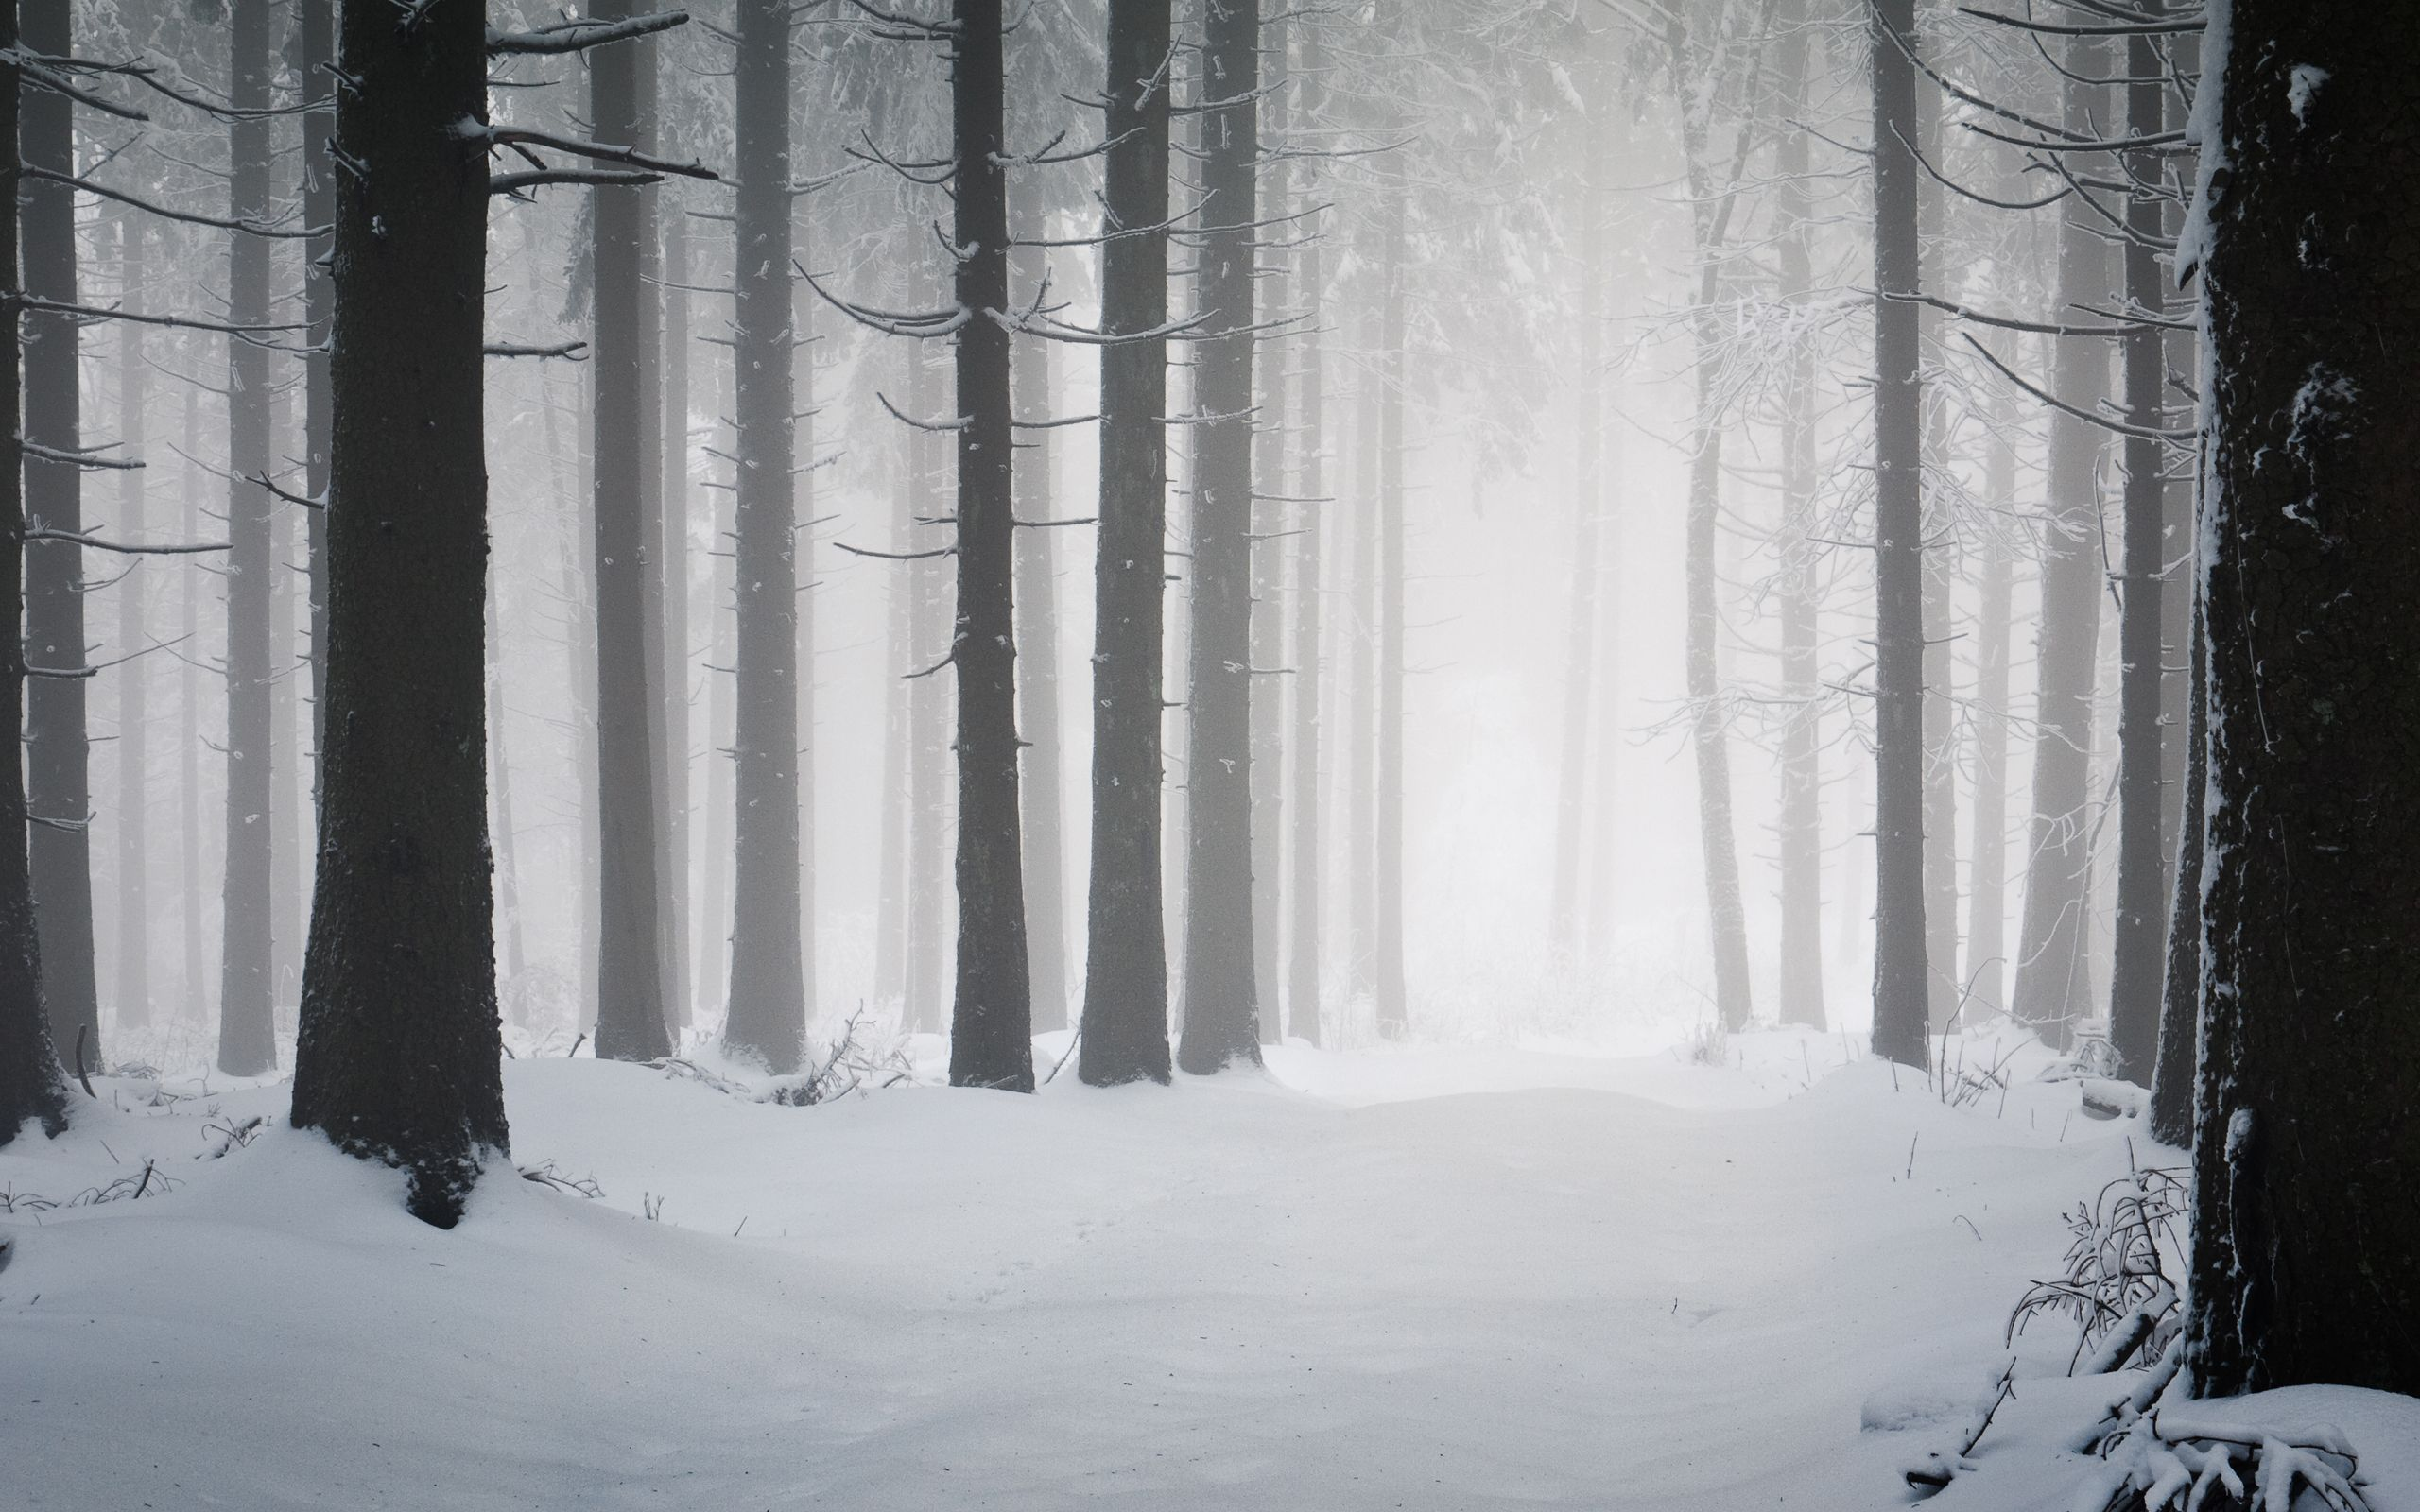 Landscape Snow Forest Snow Forest Snowy Forest Winter Forest